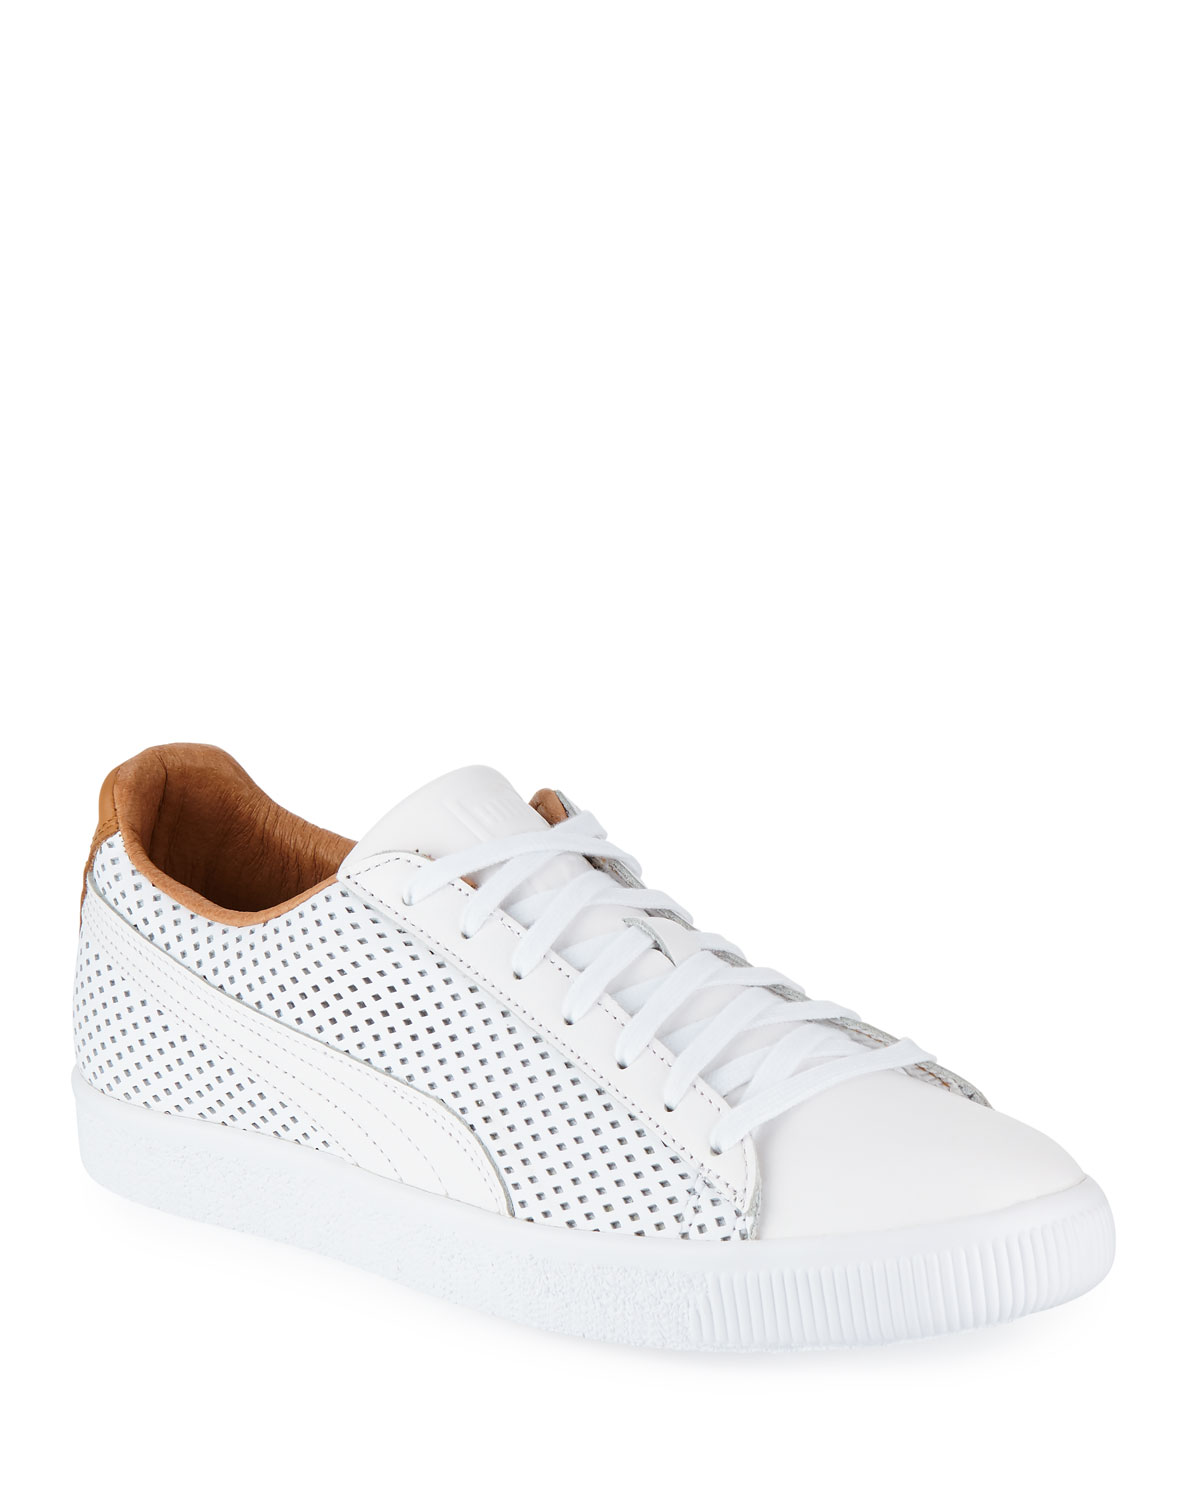 57b9a8f4a56 Puma Men s Clyde Perforated Leather Creeper Sneakers